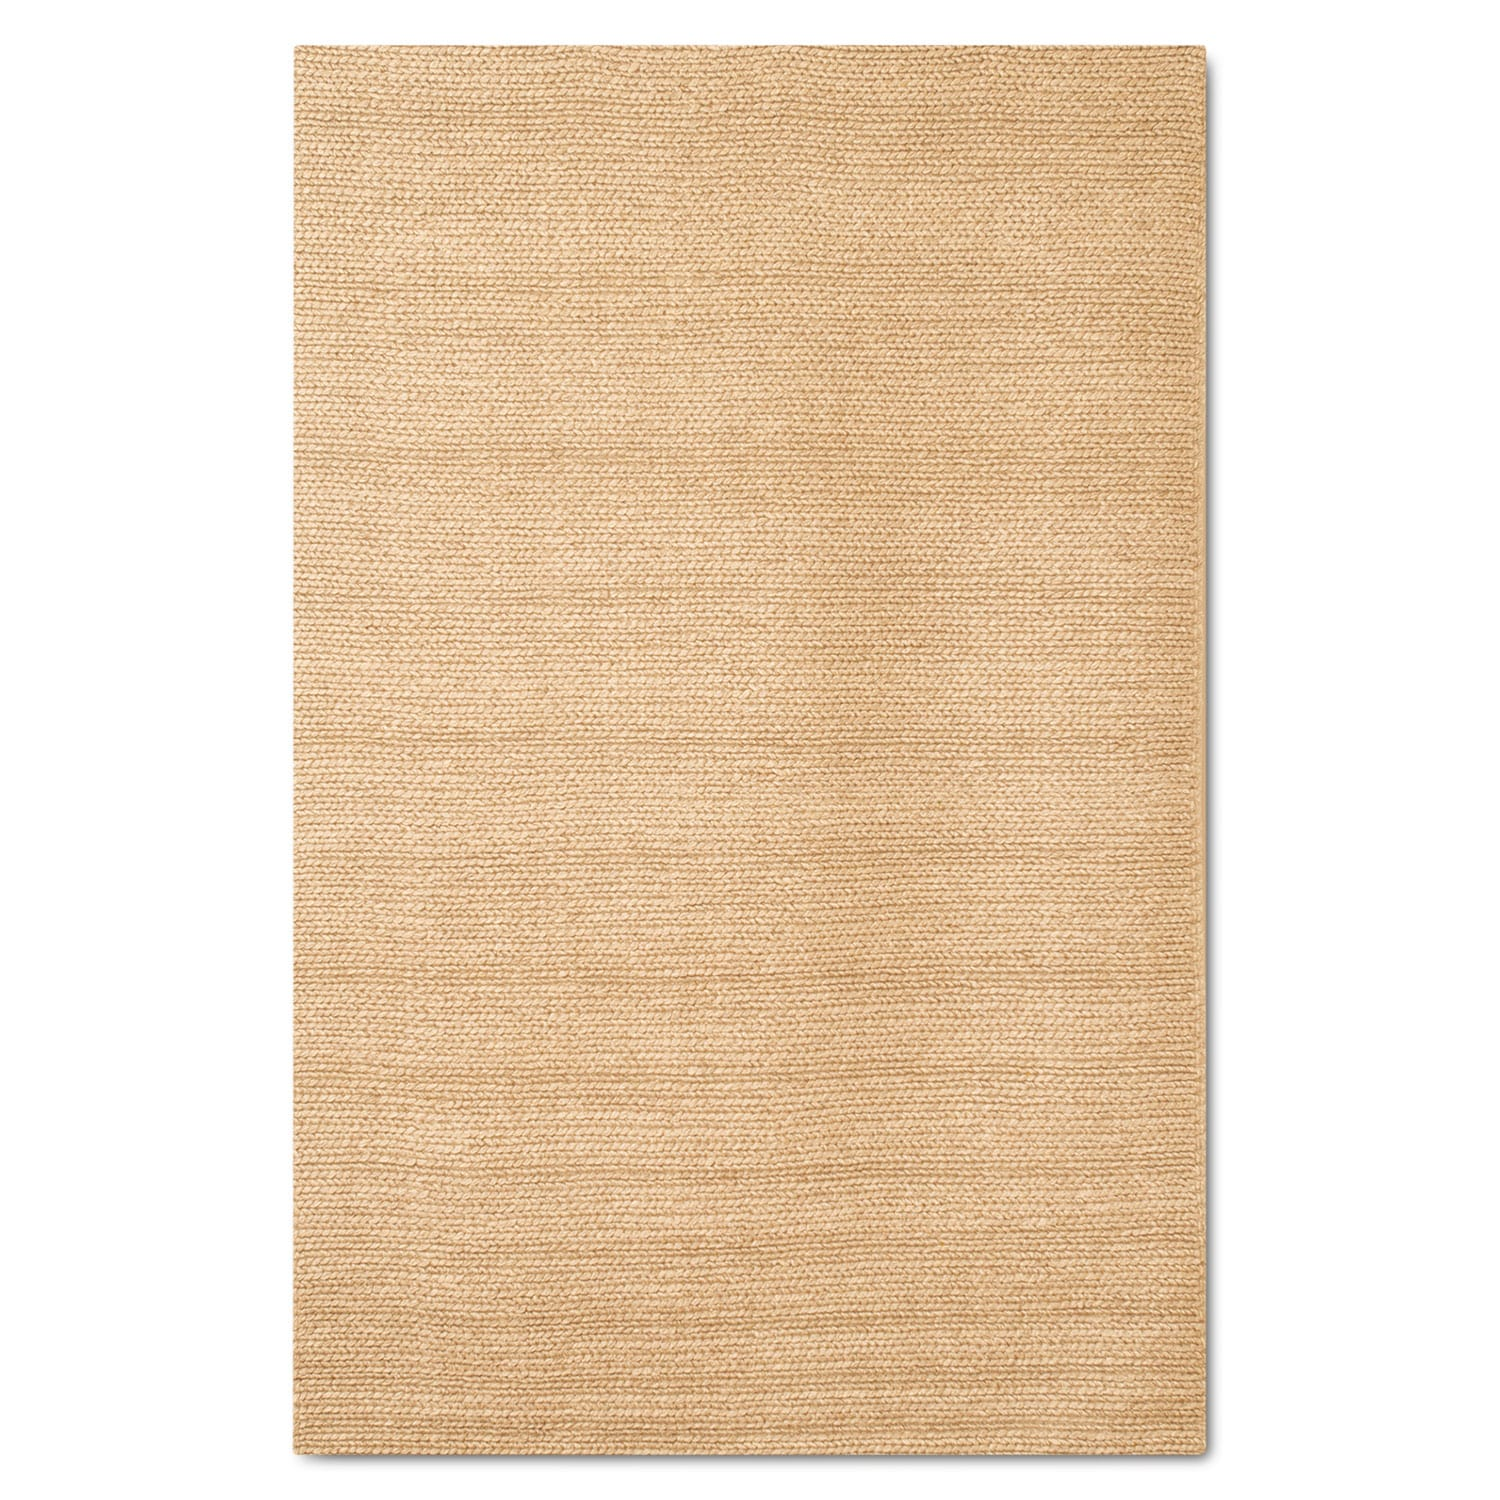 Pixley 8' x 10' Area Rug - Tan